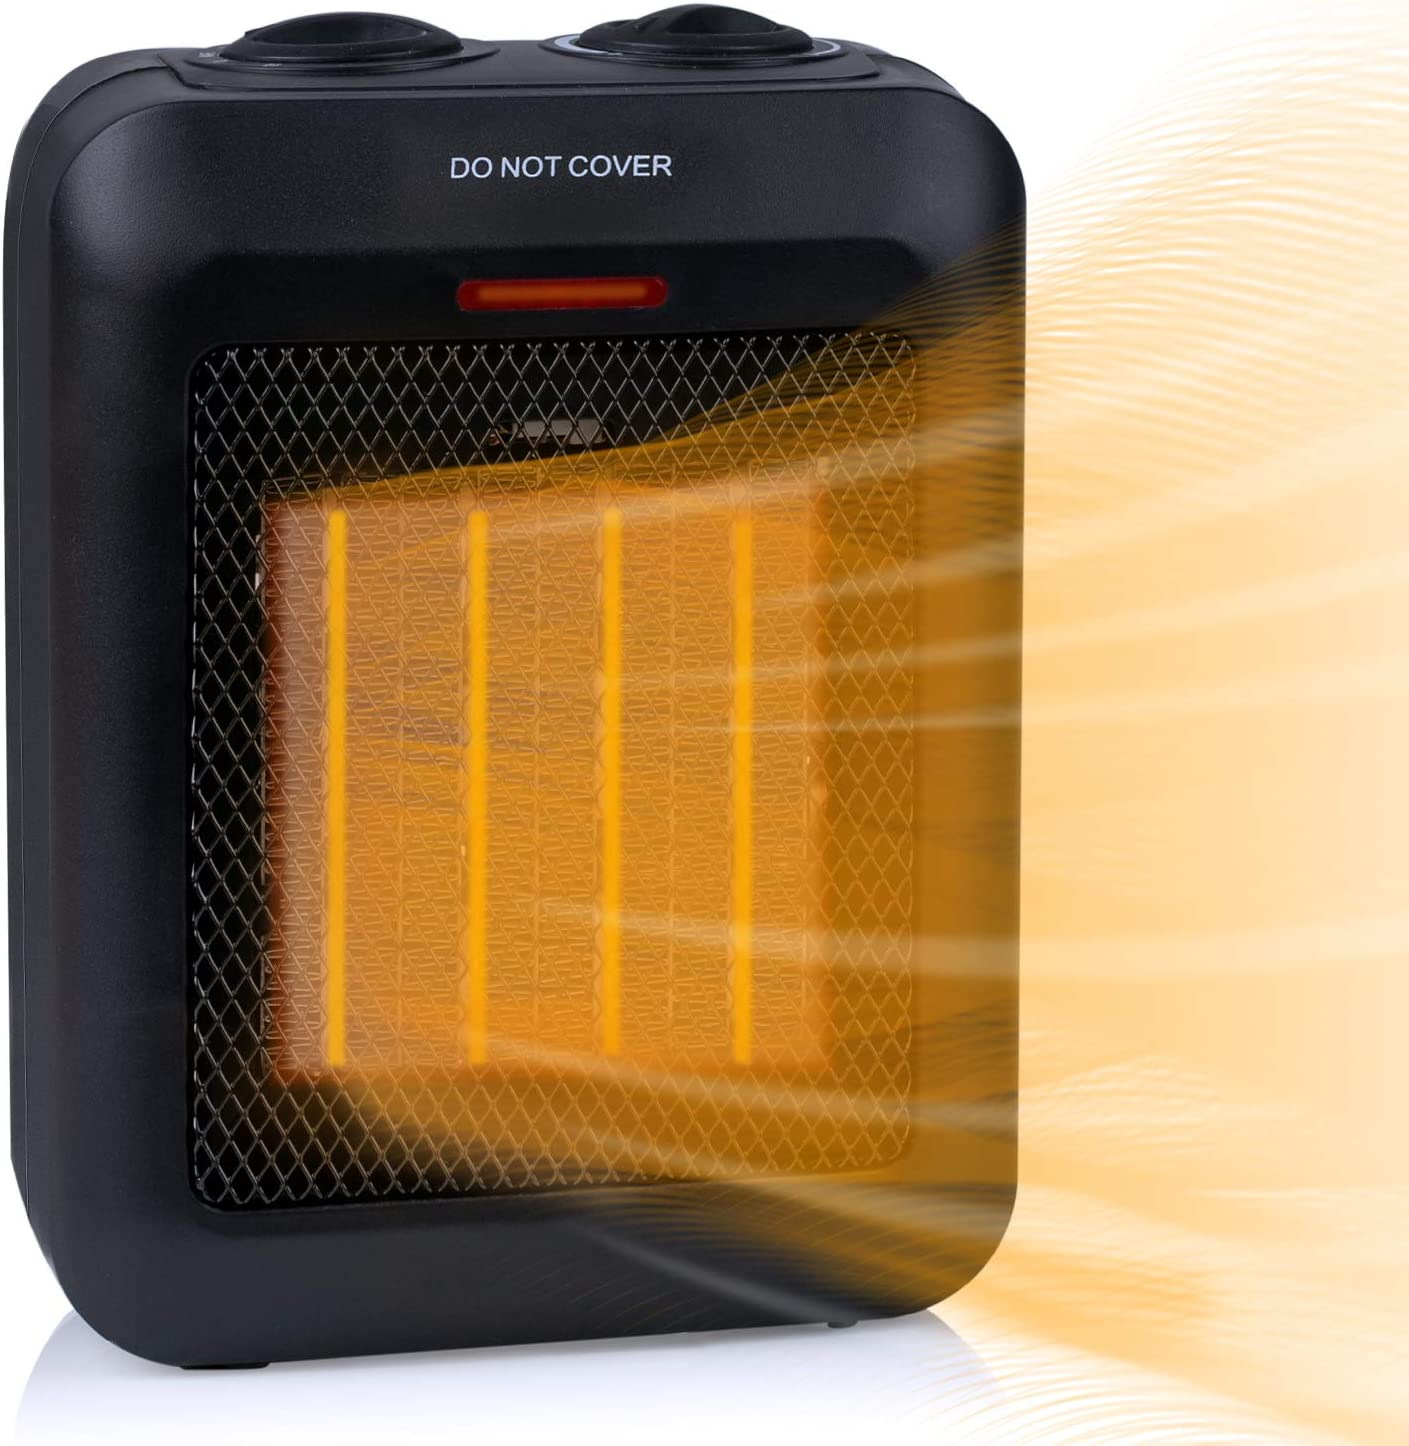 Portable Electric Space Heater 1500W/750W